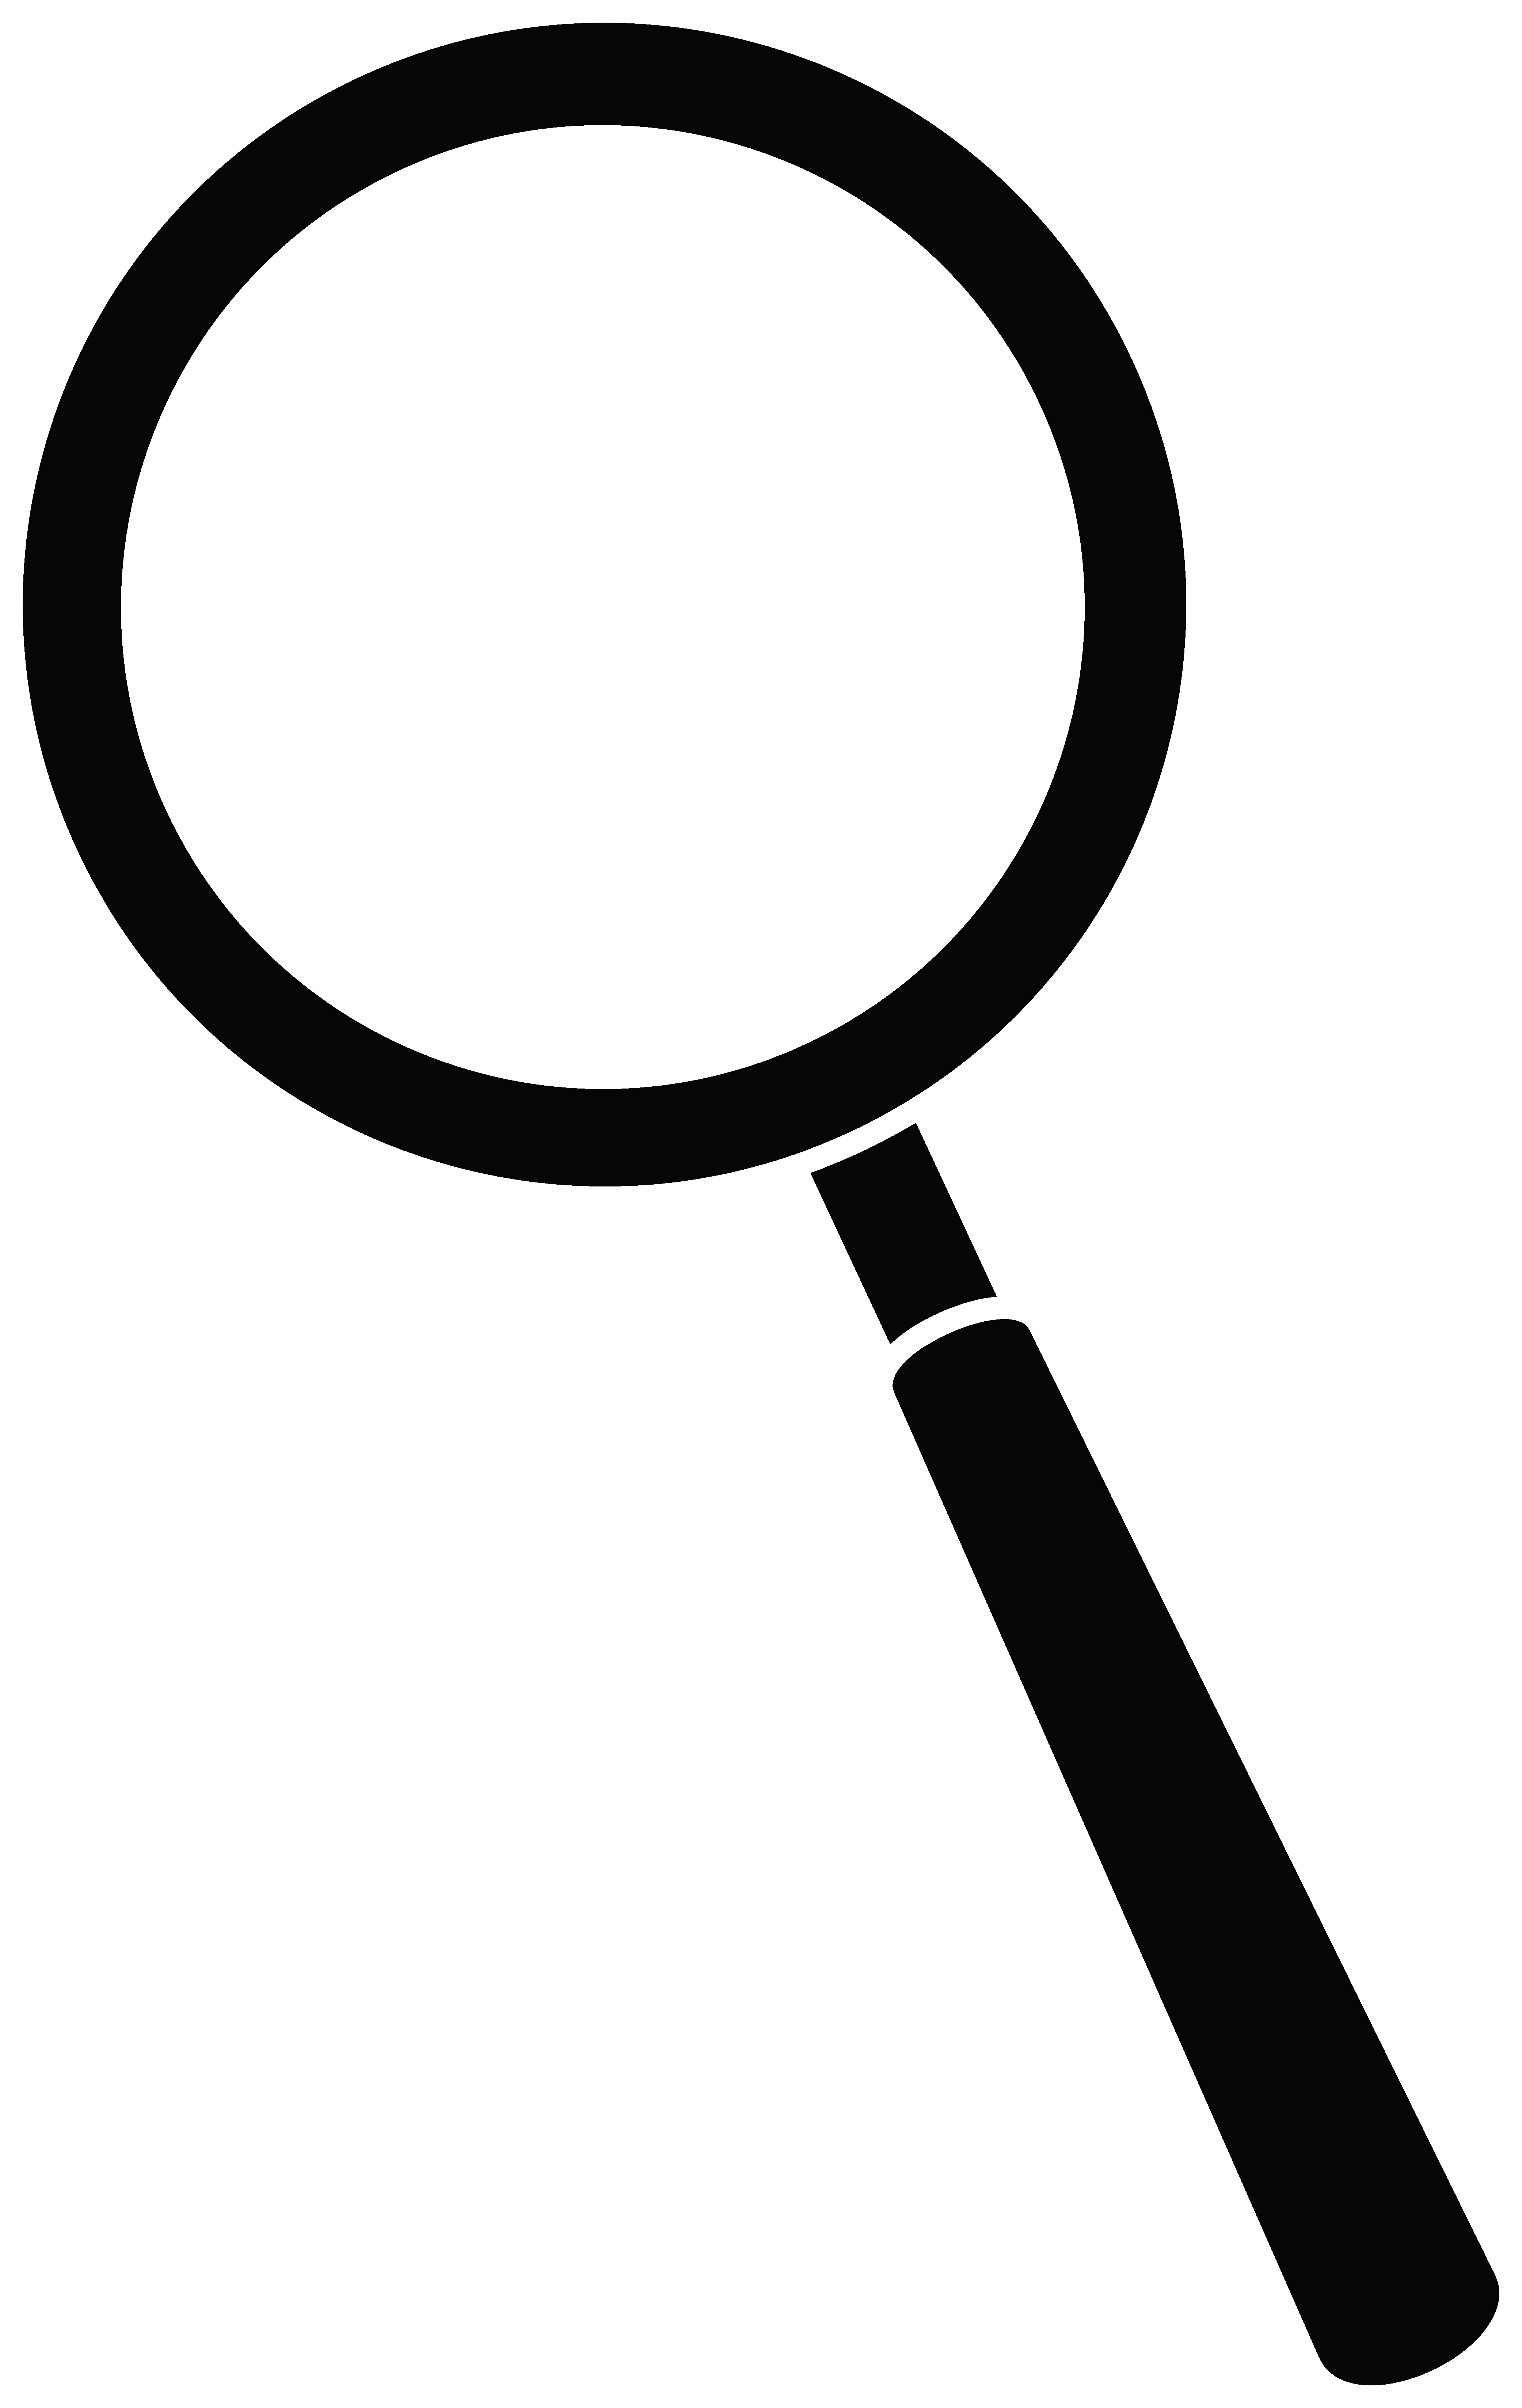 Free Magnifying Glass Cliparts, Download Free Clip Art, Free.